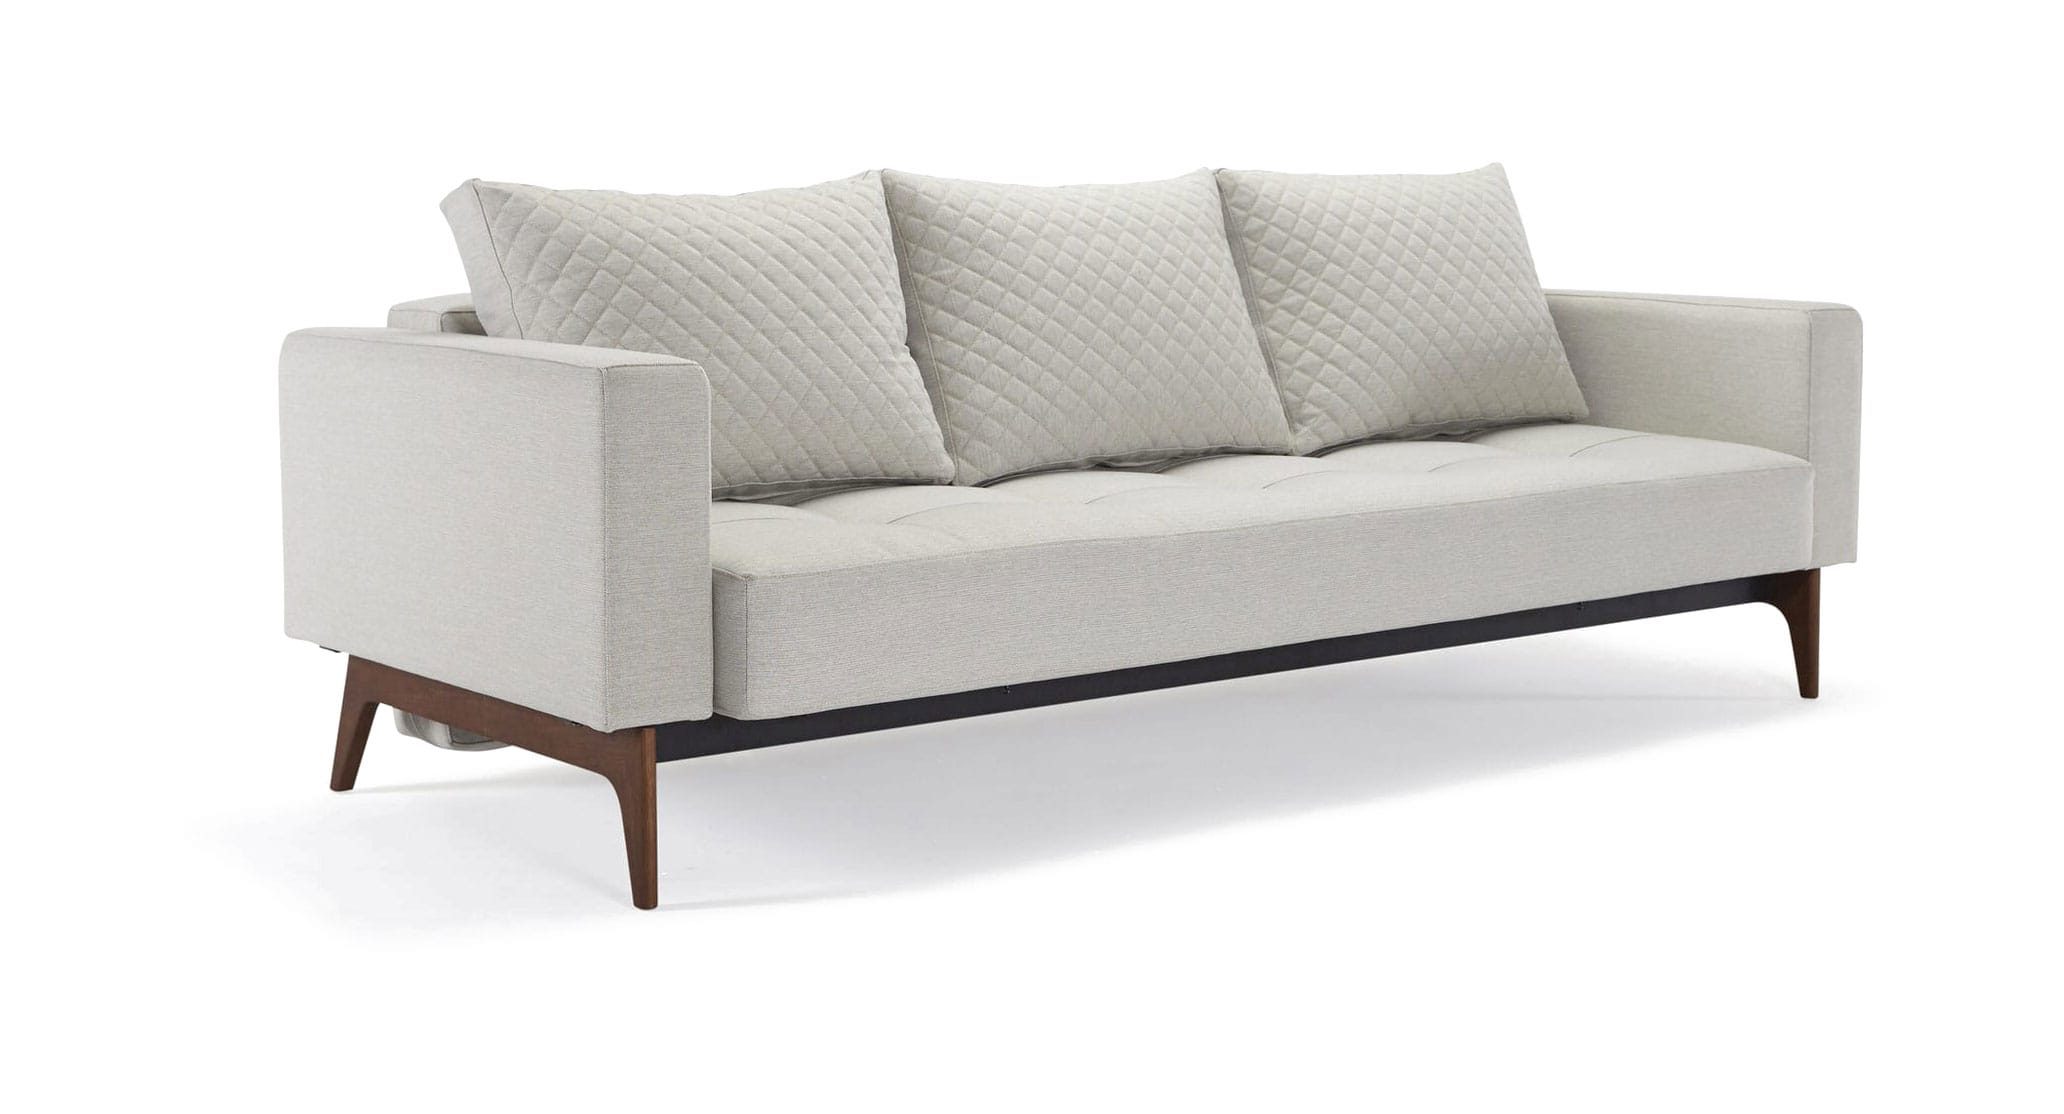 Cassius Quilt Sofa Bed Full Size Mixed Dance Natural By Innovation